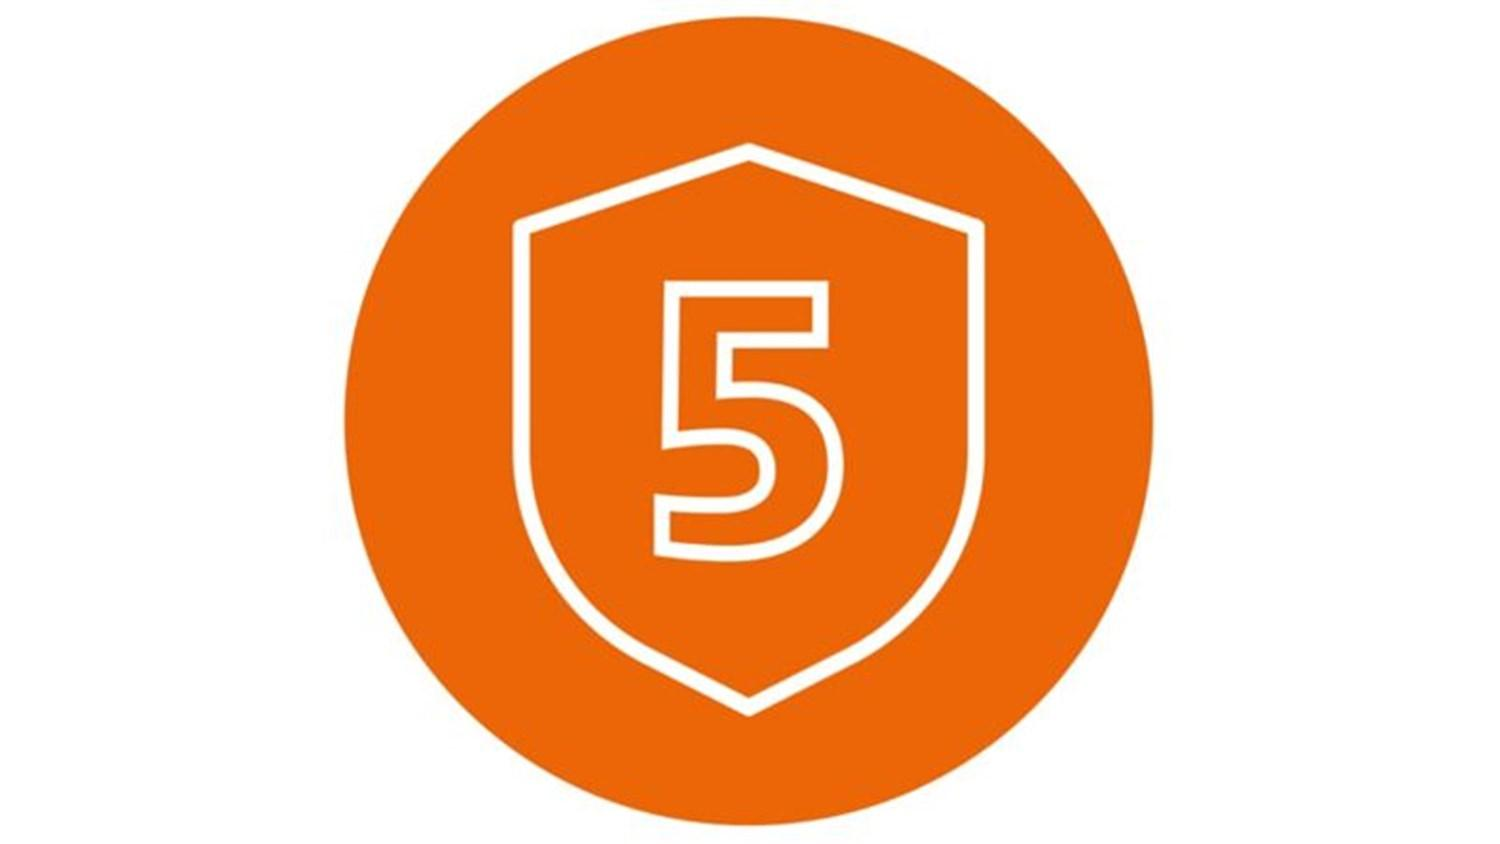 orange circle with white five in a shield